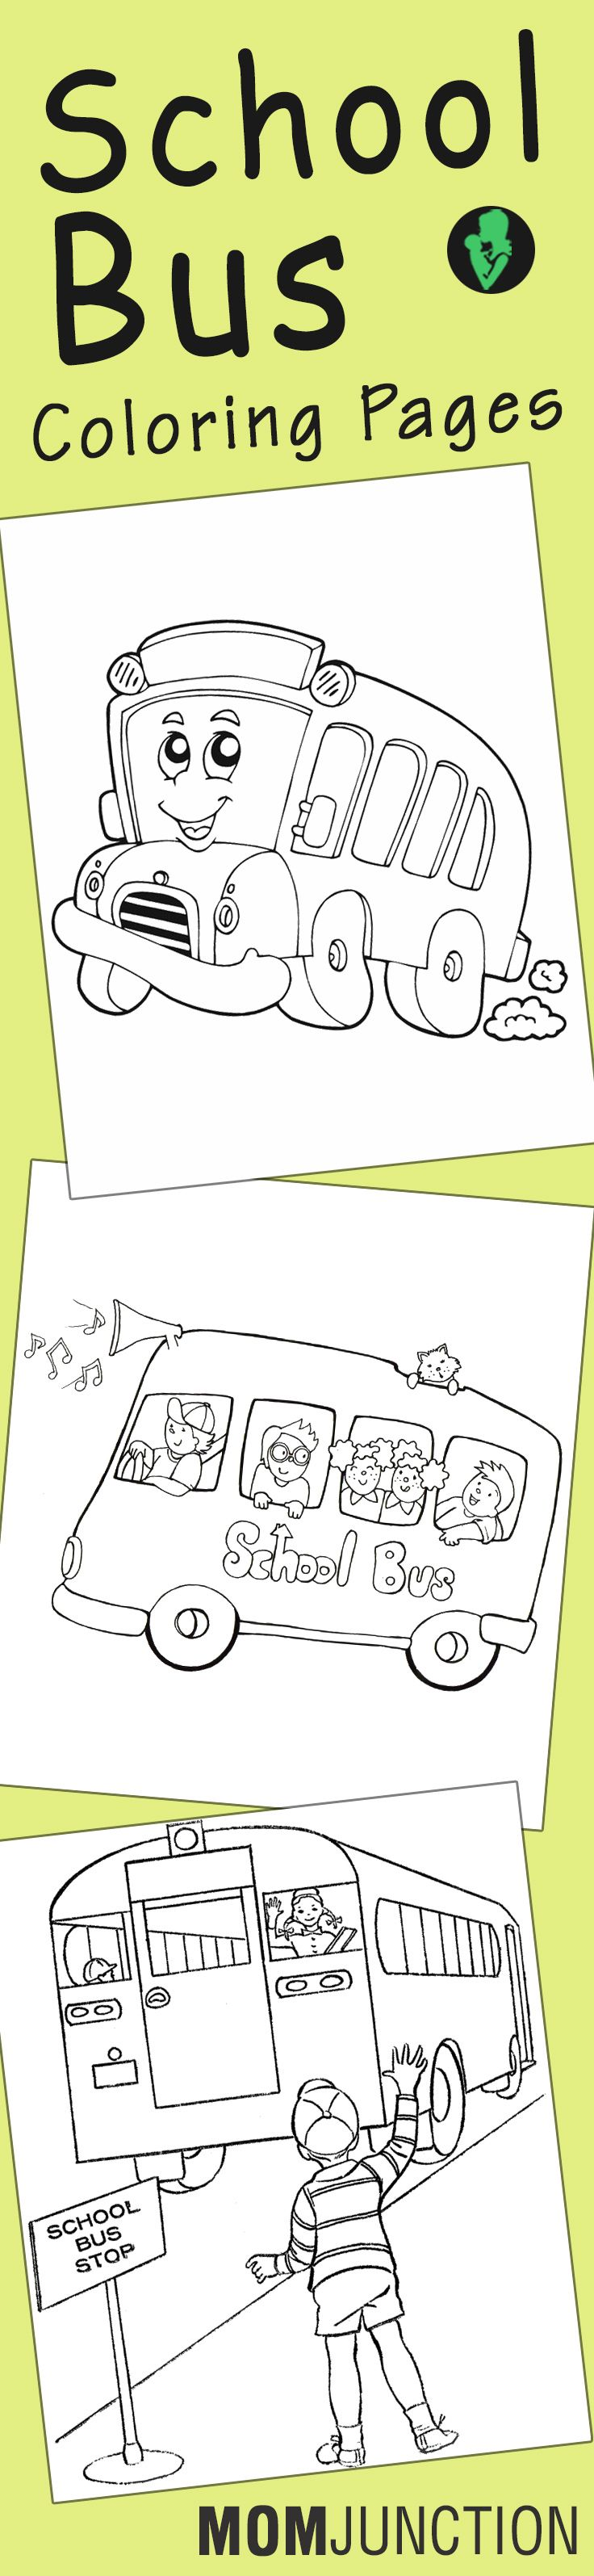 Top 10 Free Printable School Bus Coloring Pages Online | Preescolar